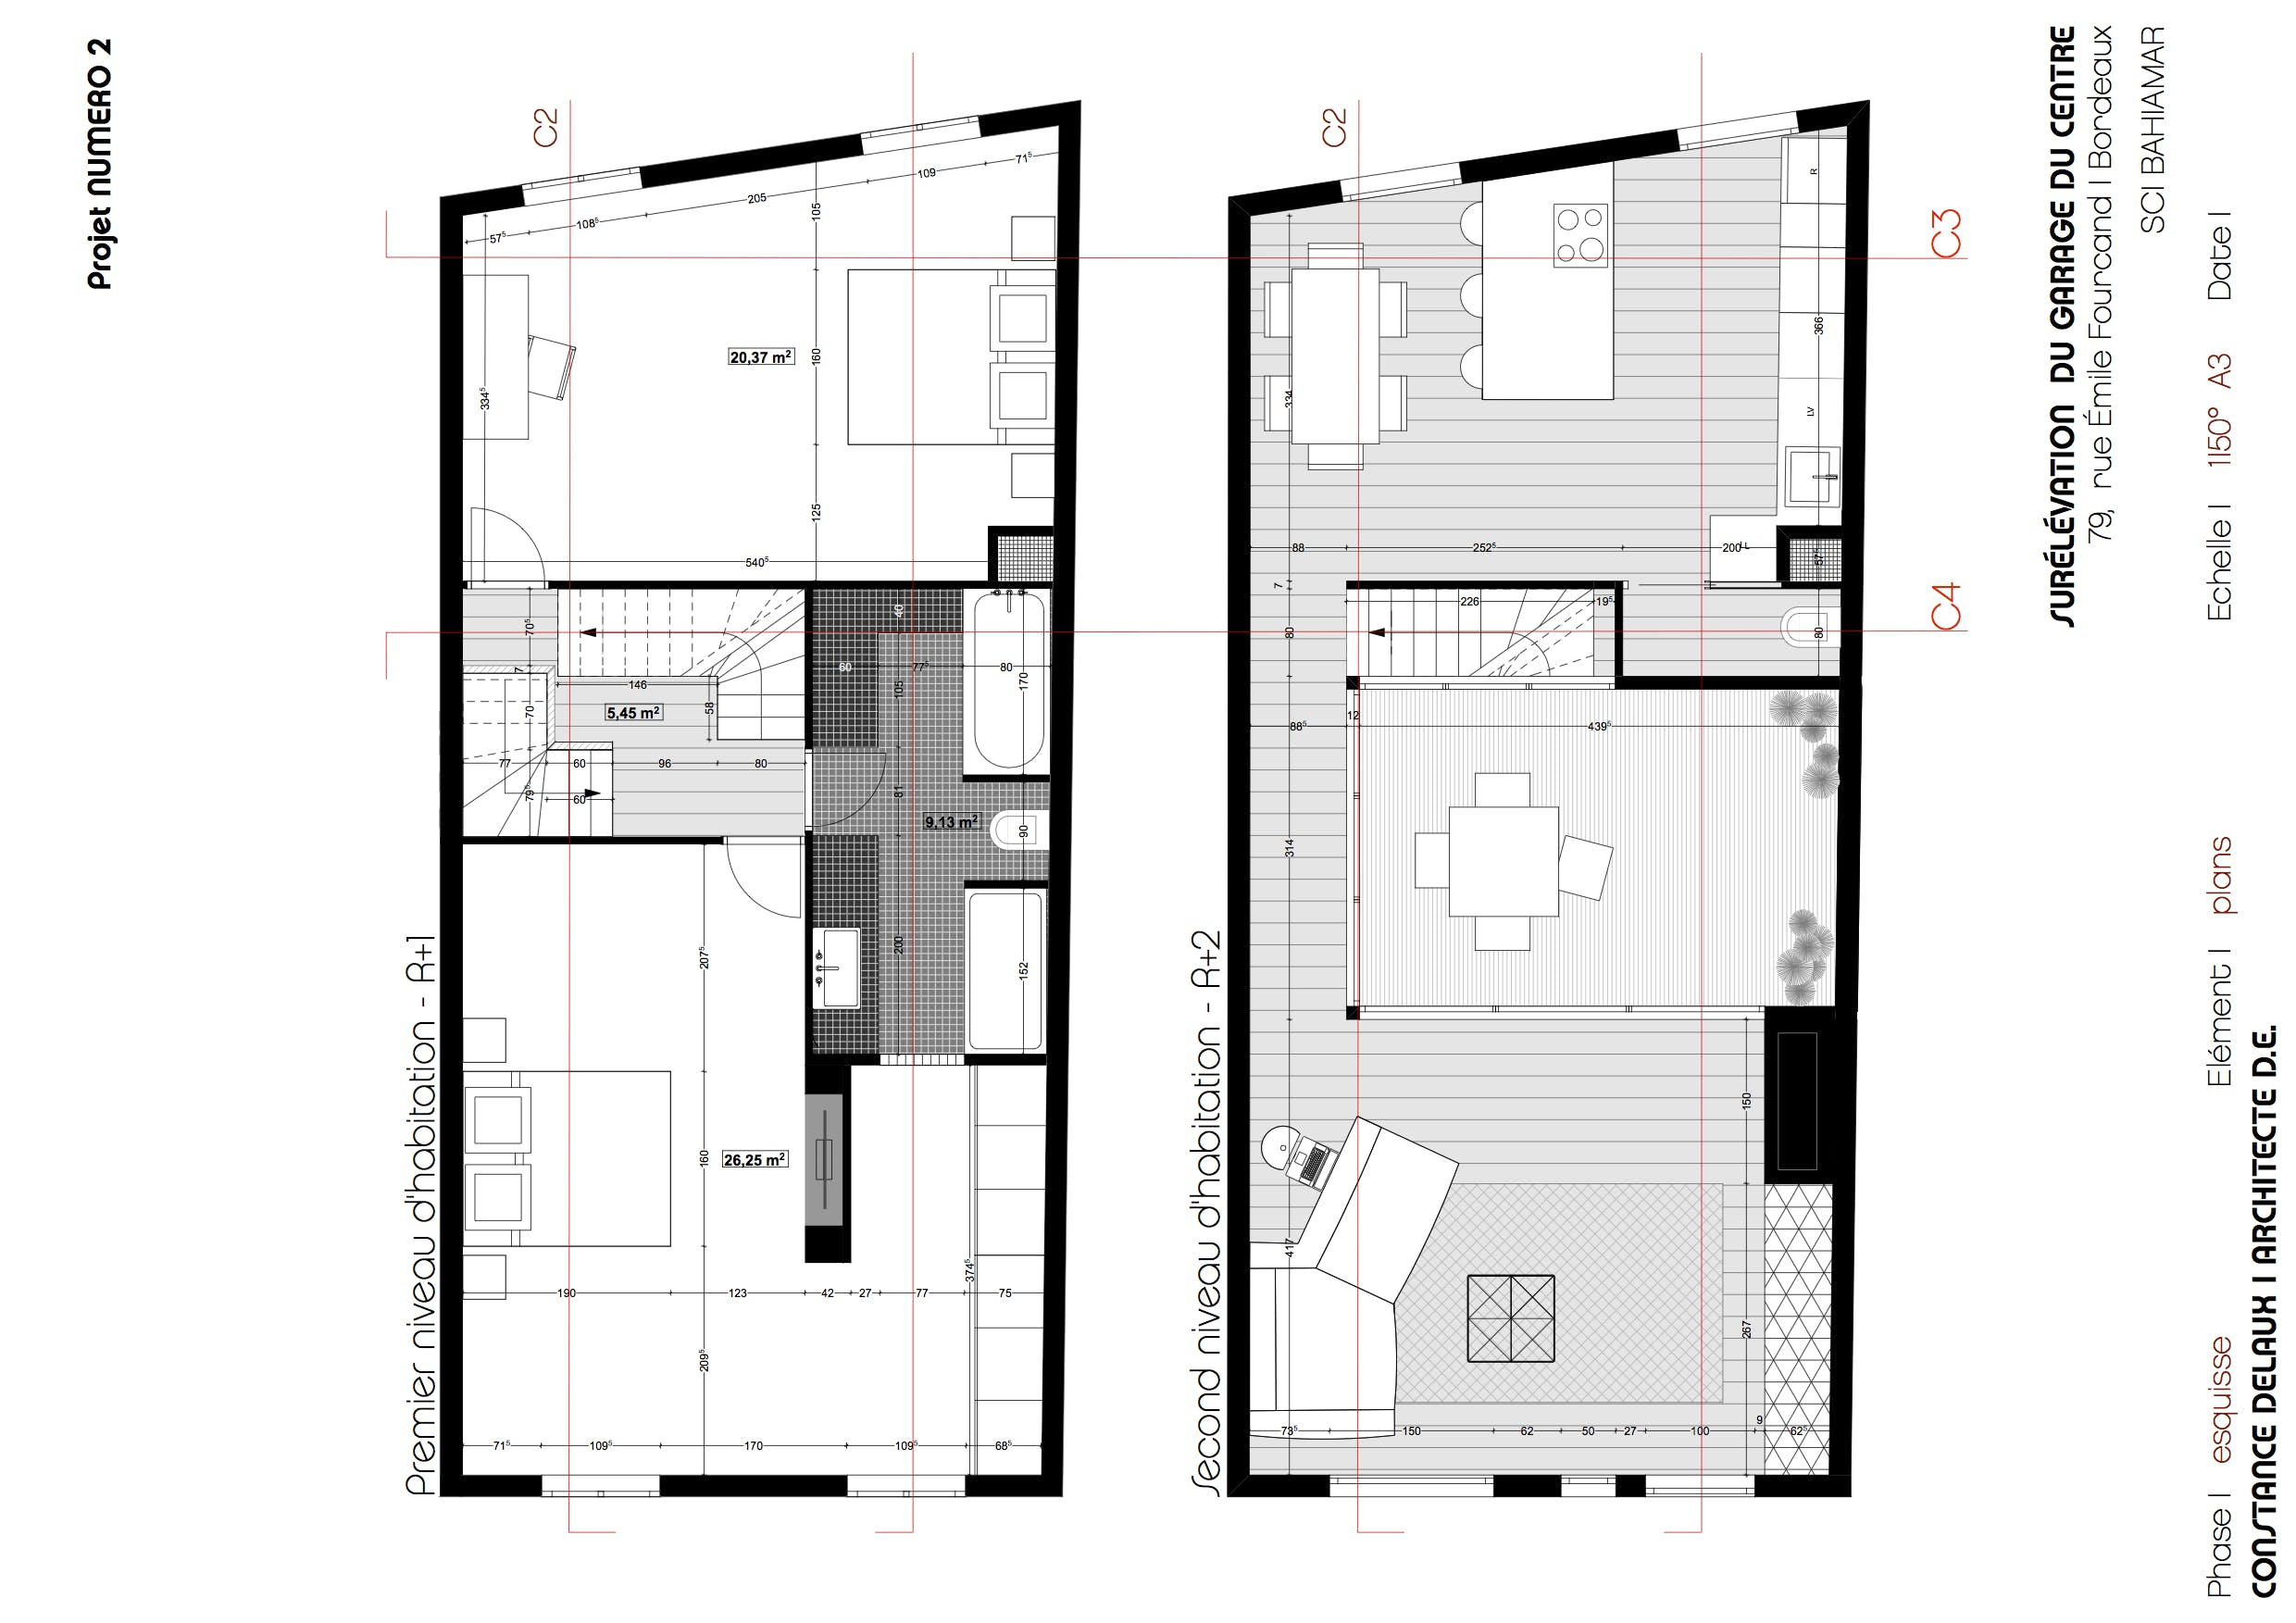 Elevation Of An Apartment Constance Delaux Archinect - What is my elevation at my location